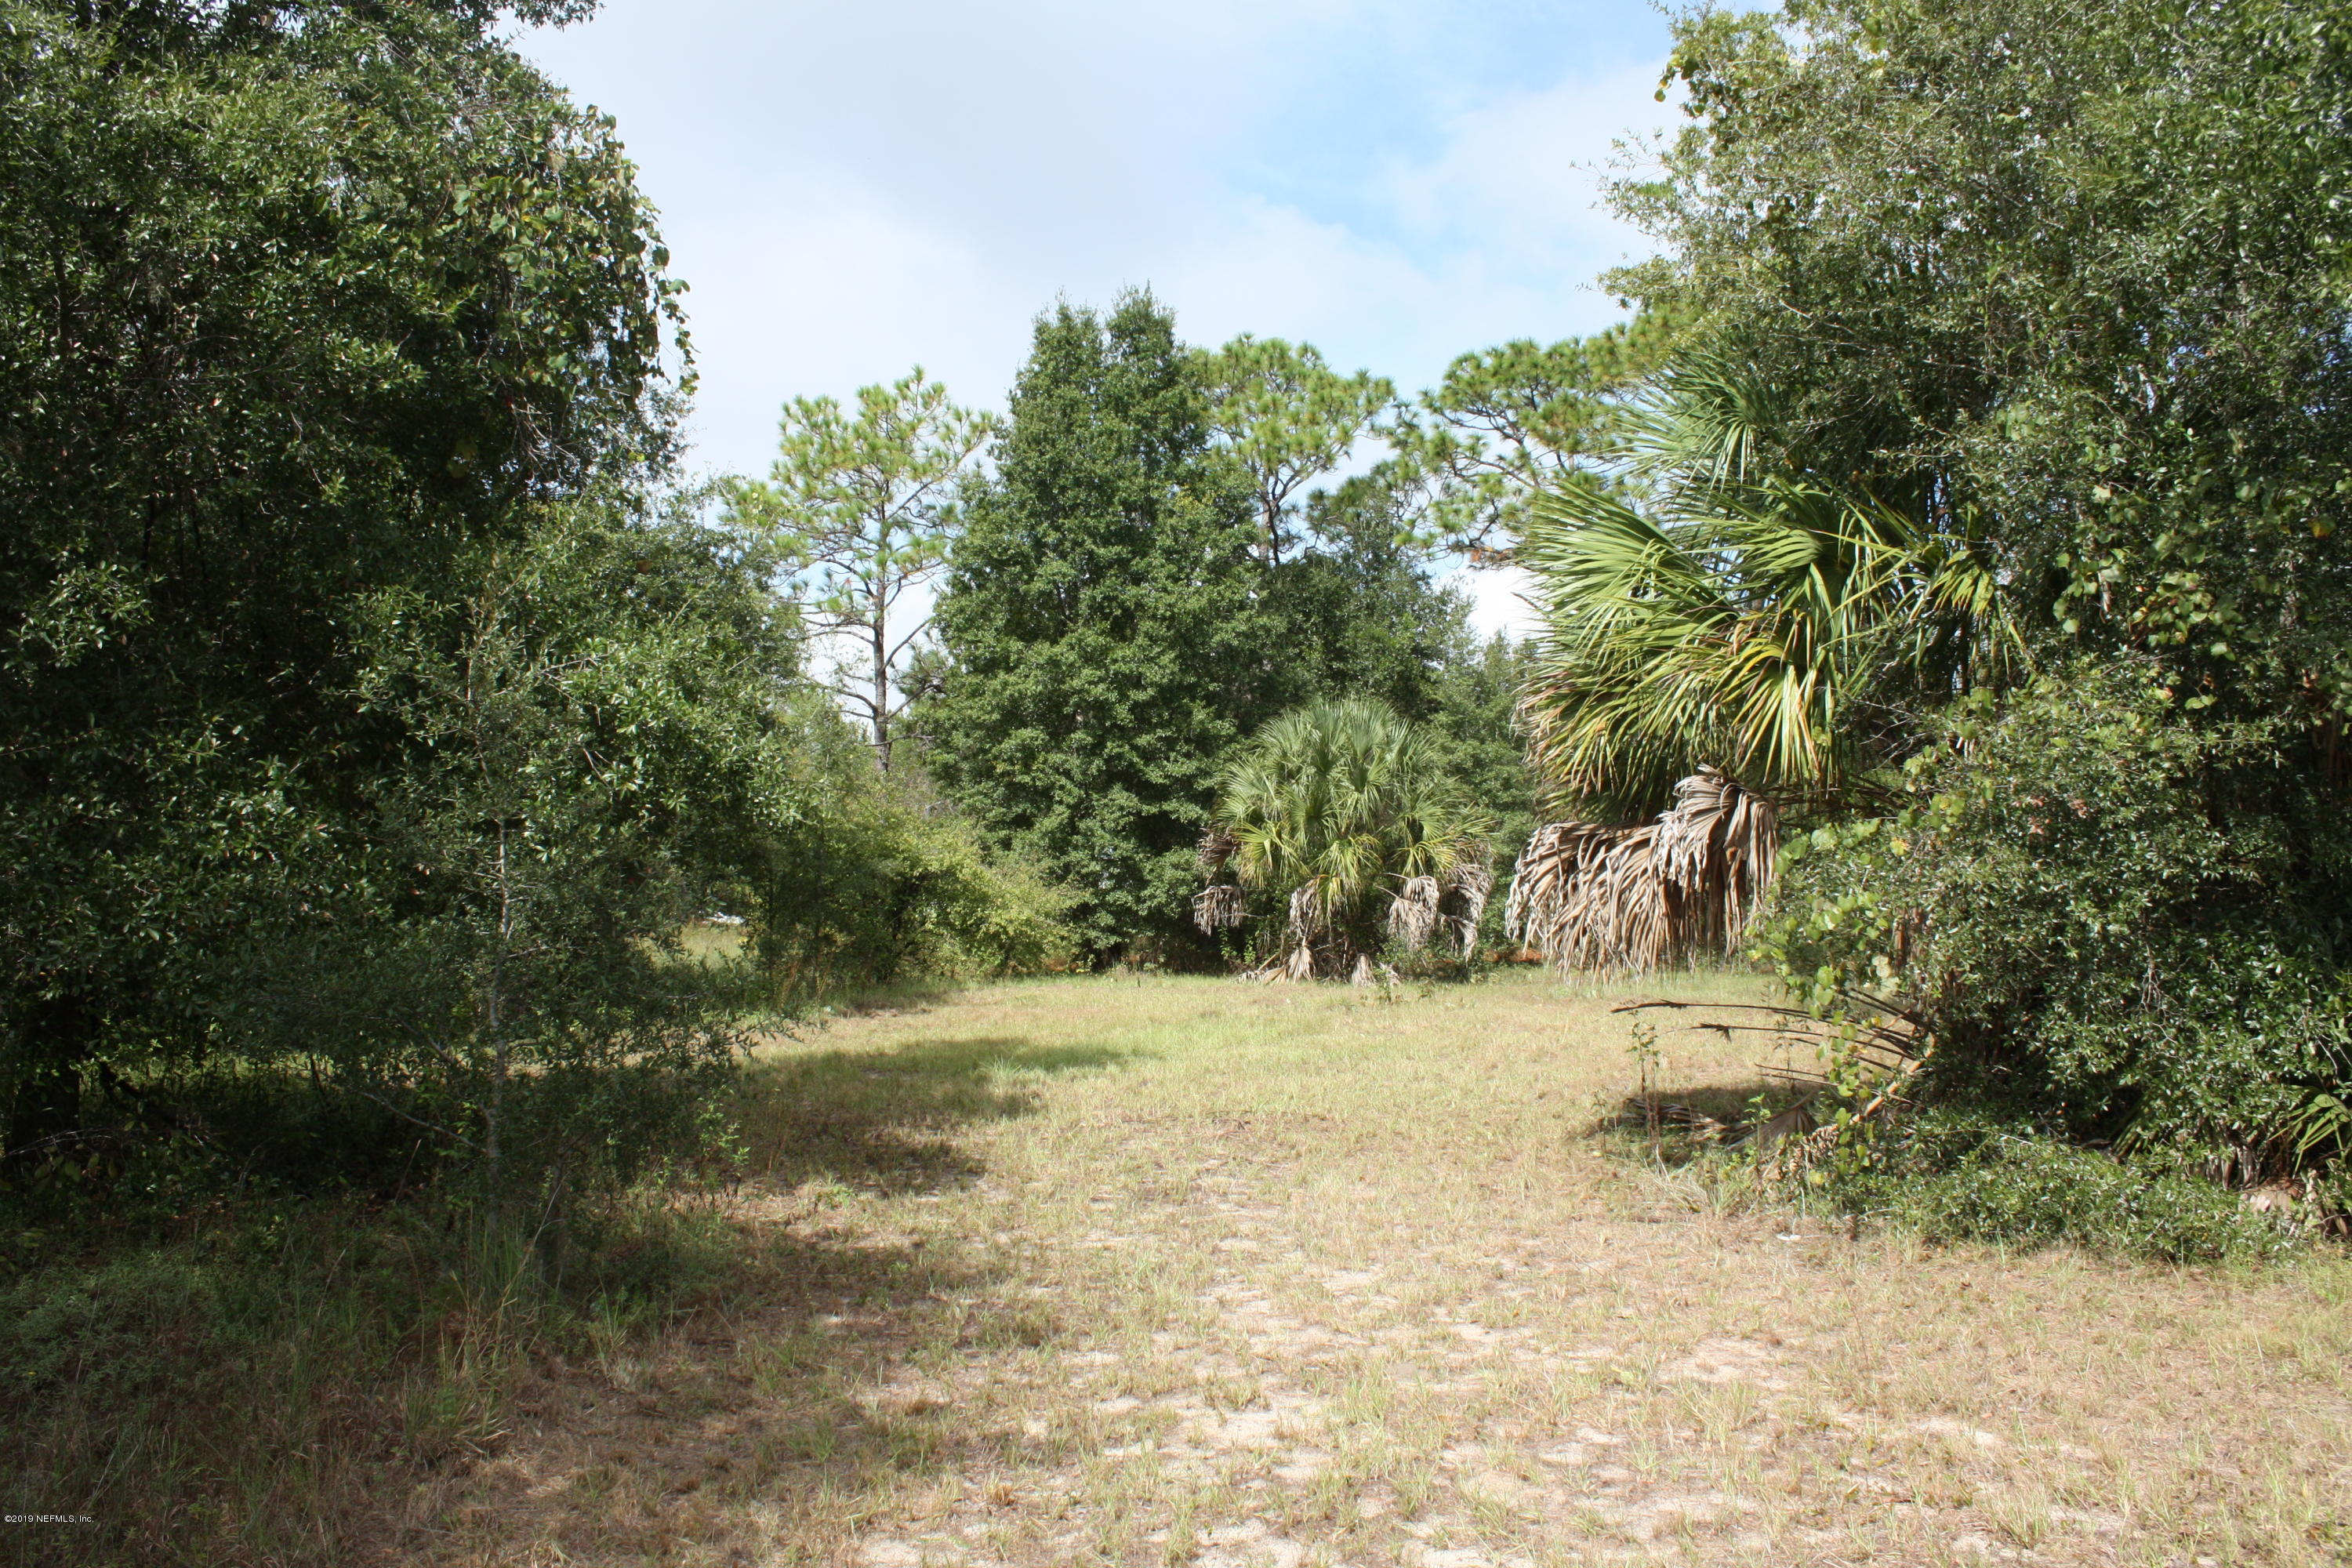 0 COMMERCIAL, KEYSTONE HEIGHTS, FLORIDA 32656, ,Commercial,For sale,COMMERCIAL,1019155